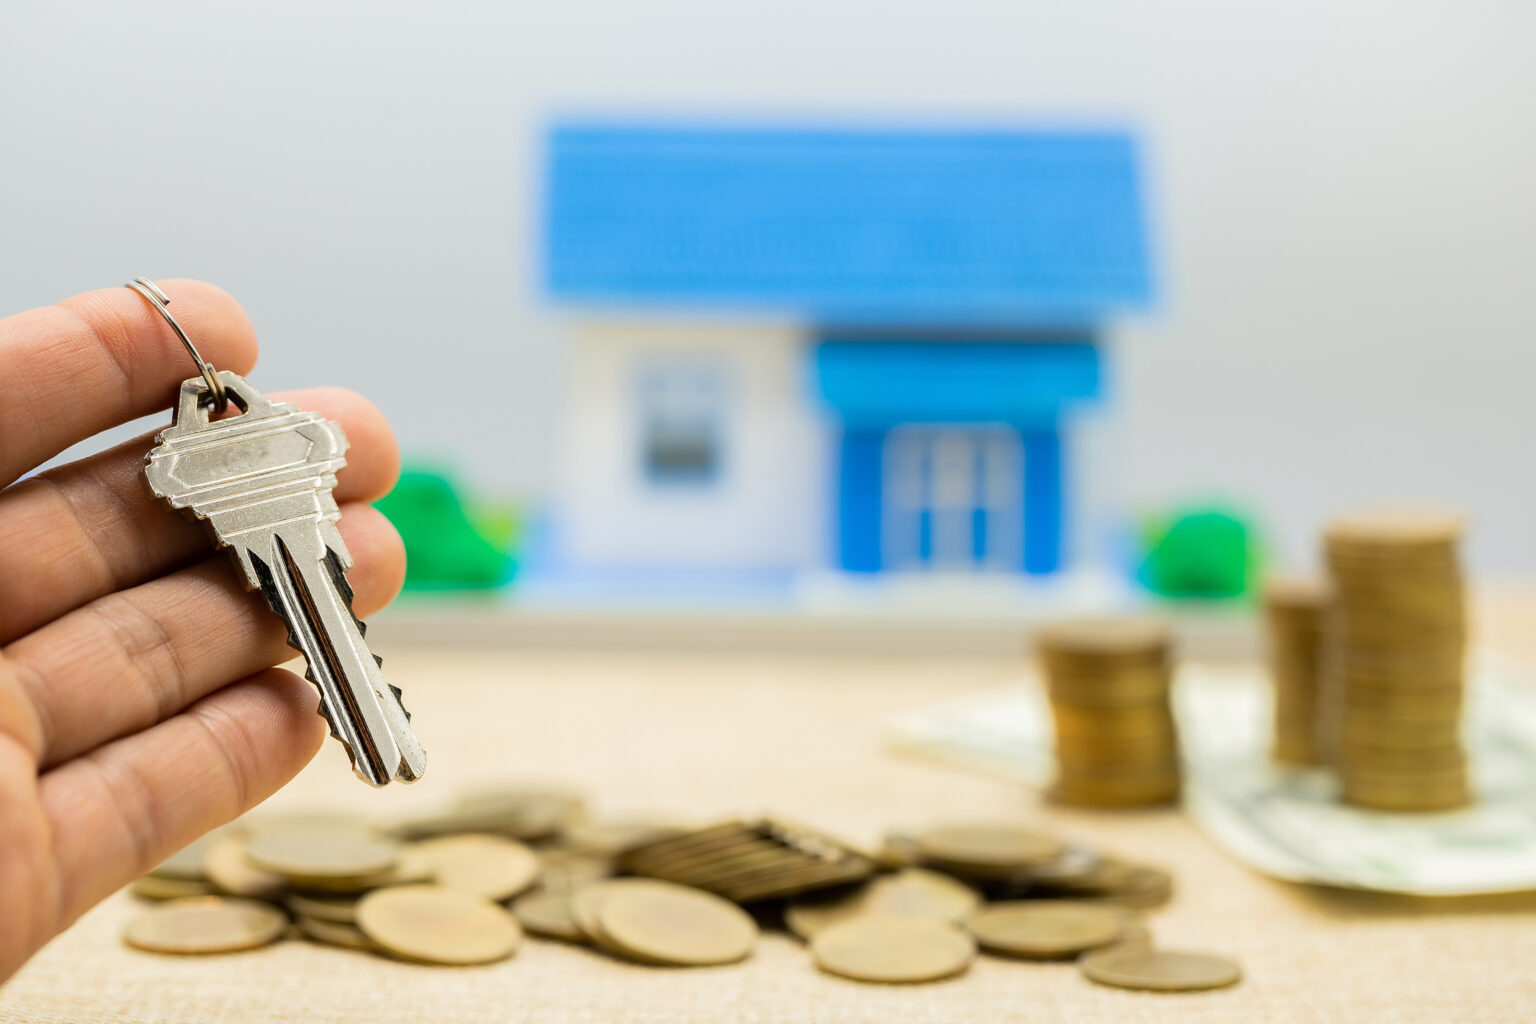 Keys and money piles and houses for mortgage loan concepts.